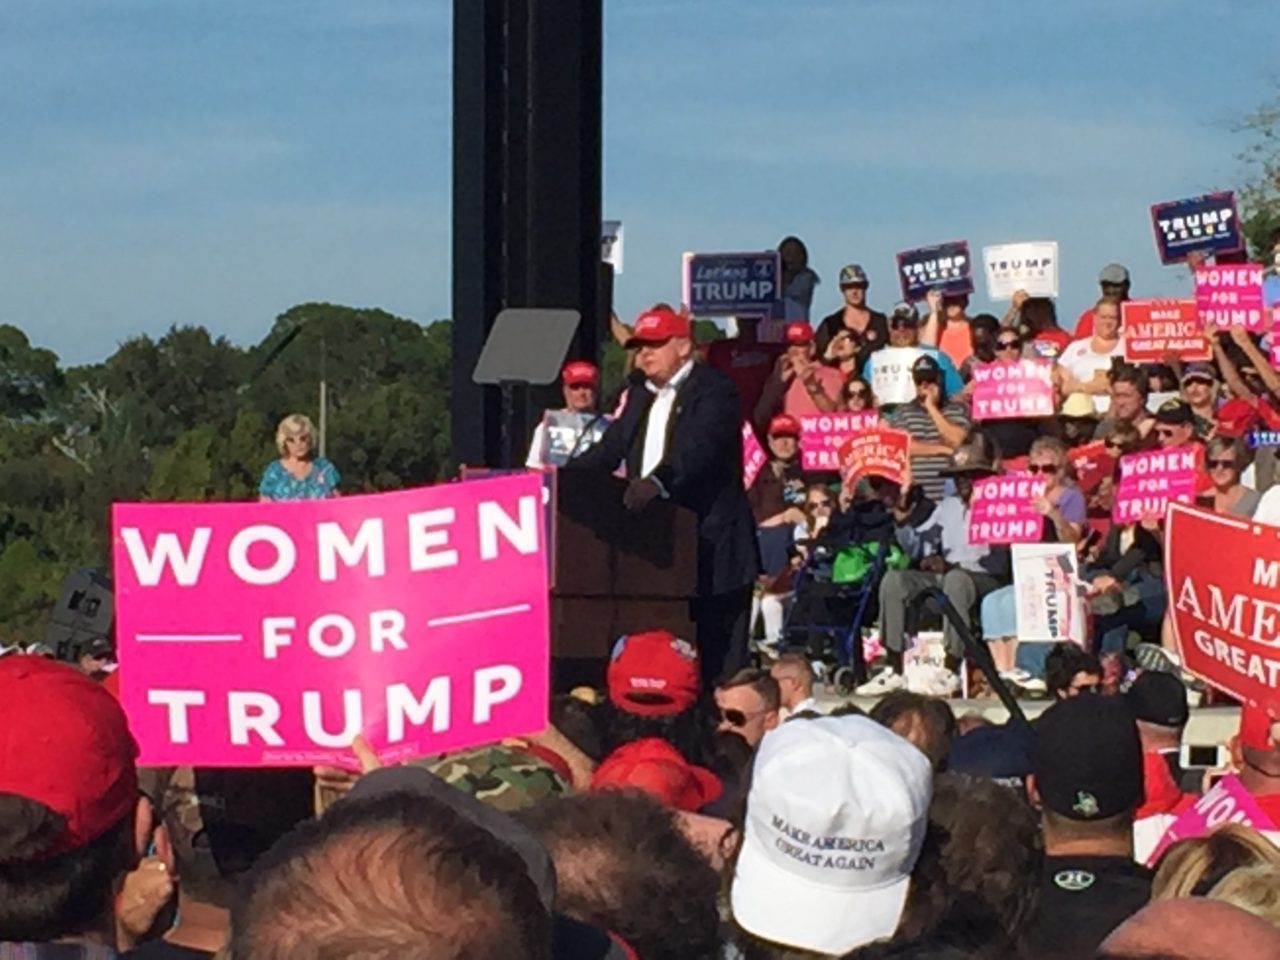 Women for Trump Orlando Florida rally (Joel Pollak / Breitbart News)